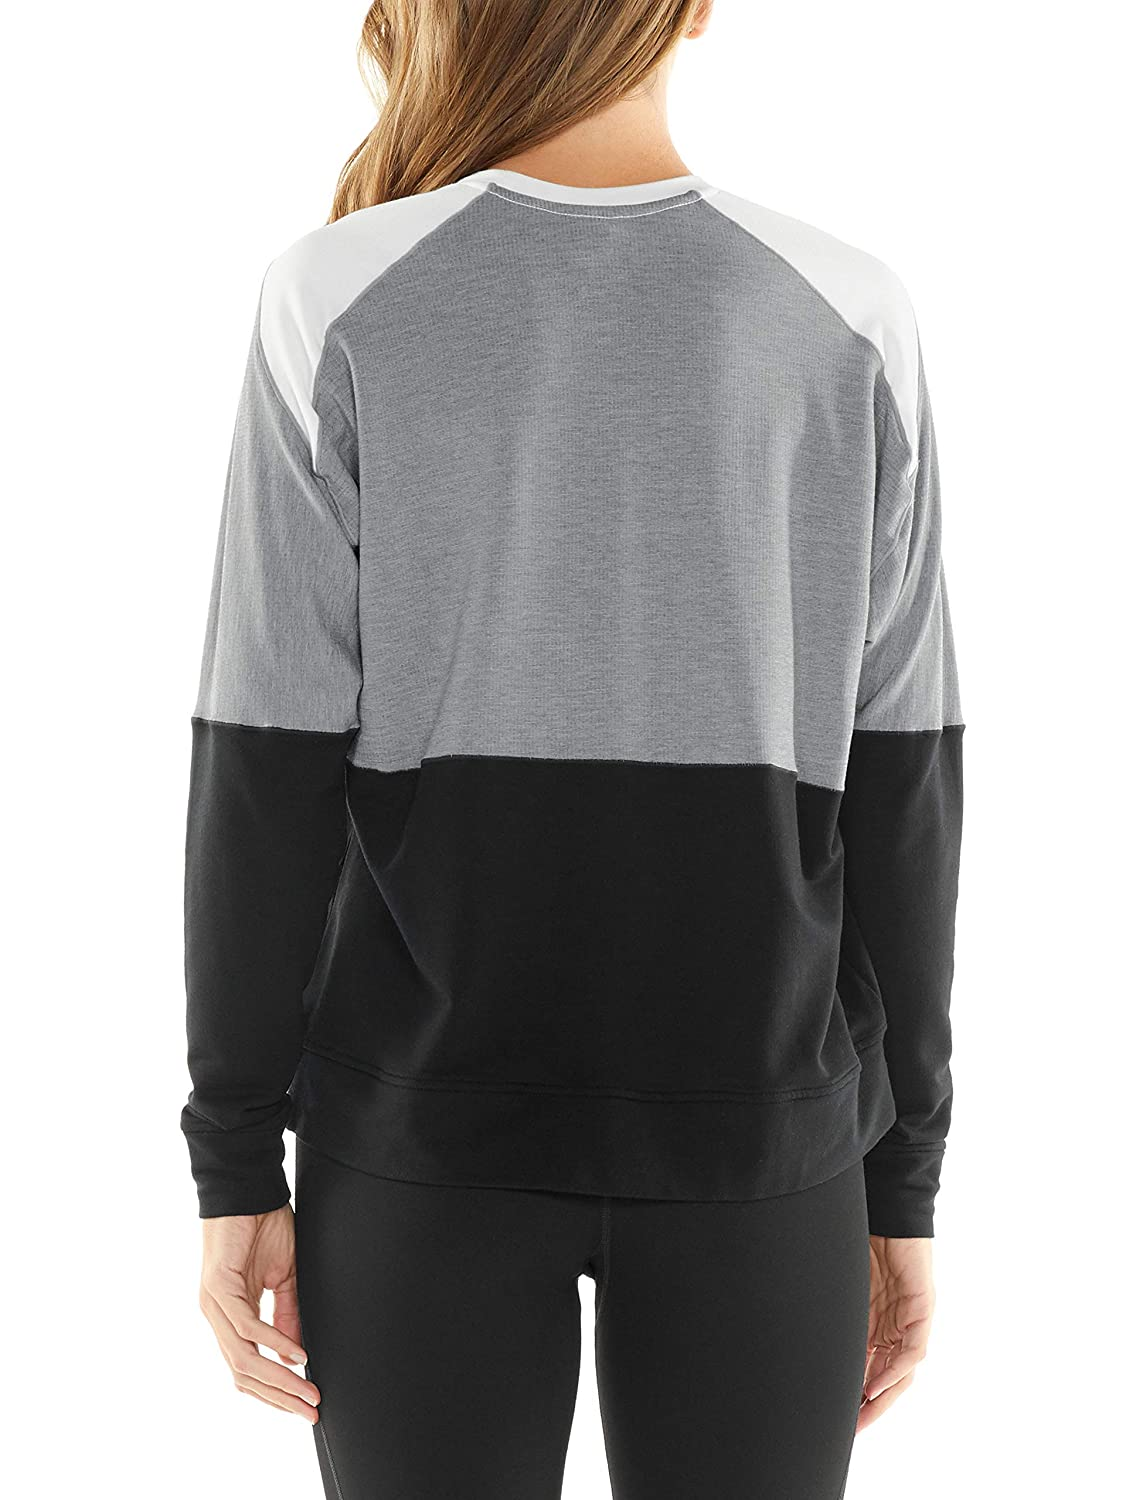 2fc5d137433a87 Amazon.com: Icebreaker Merino Women's Momentum Ls Crewe: Sports & Outdoors